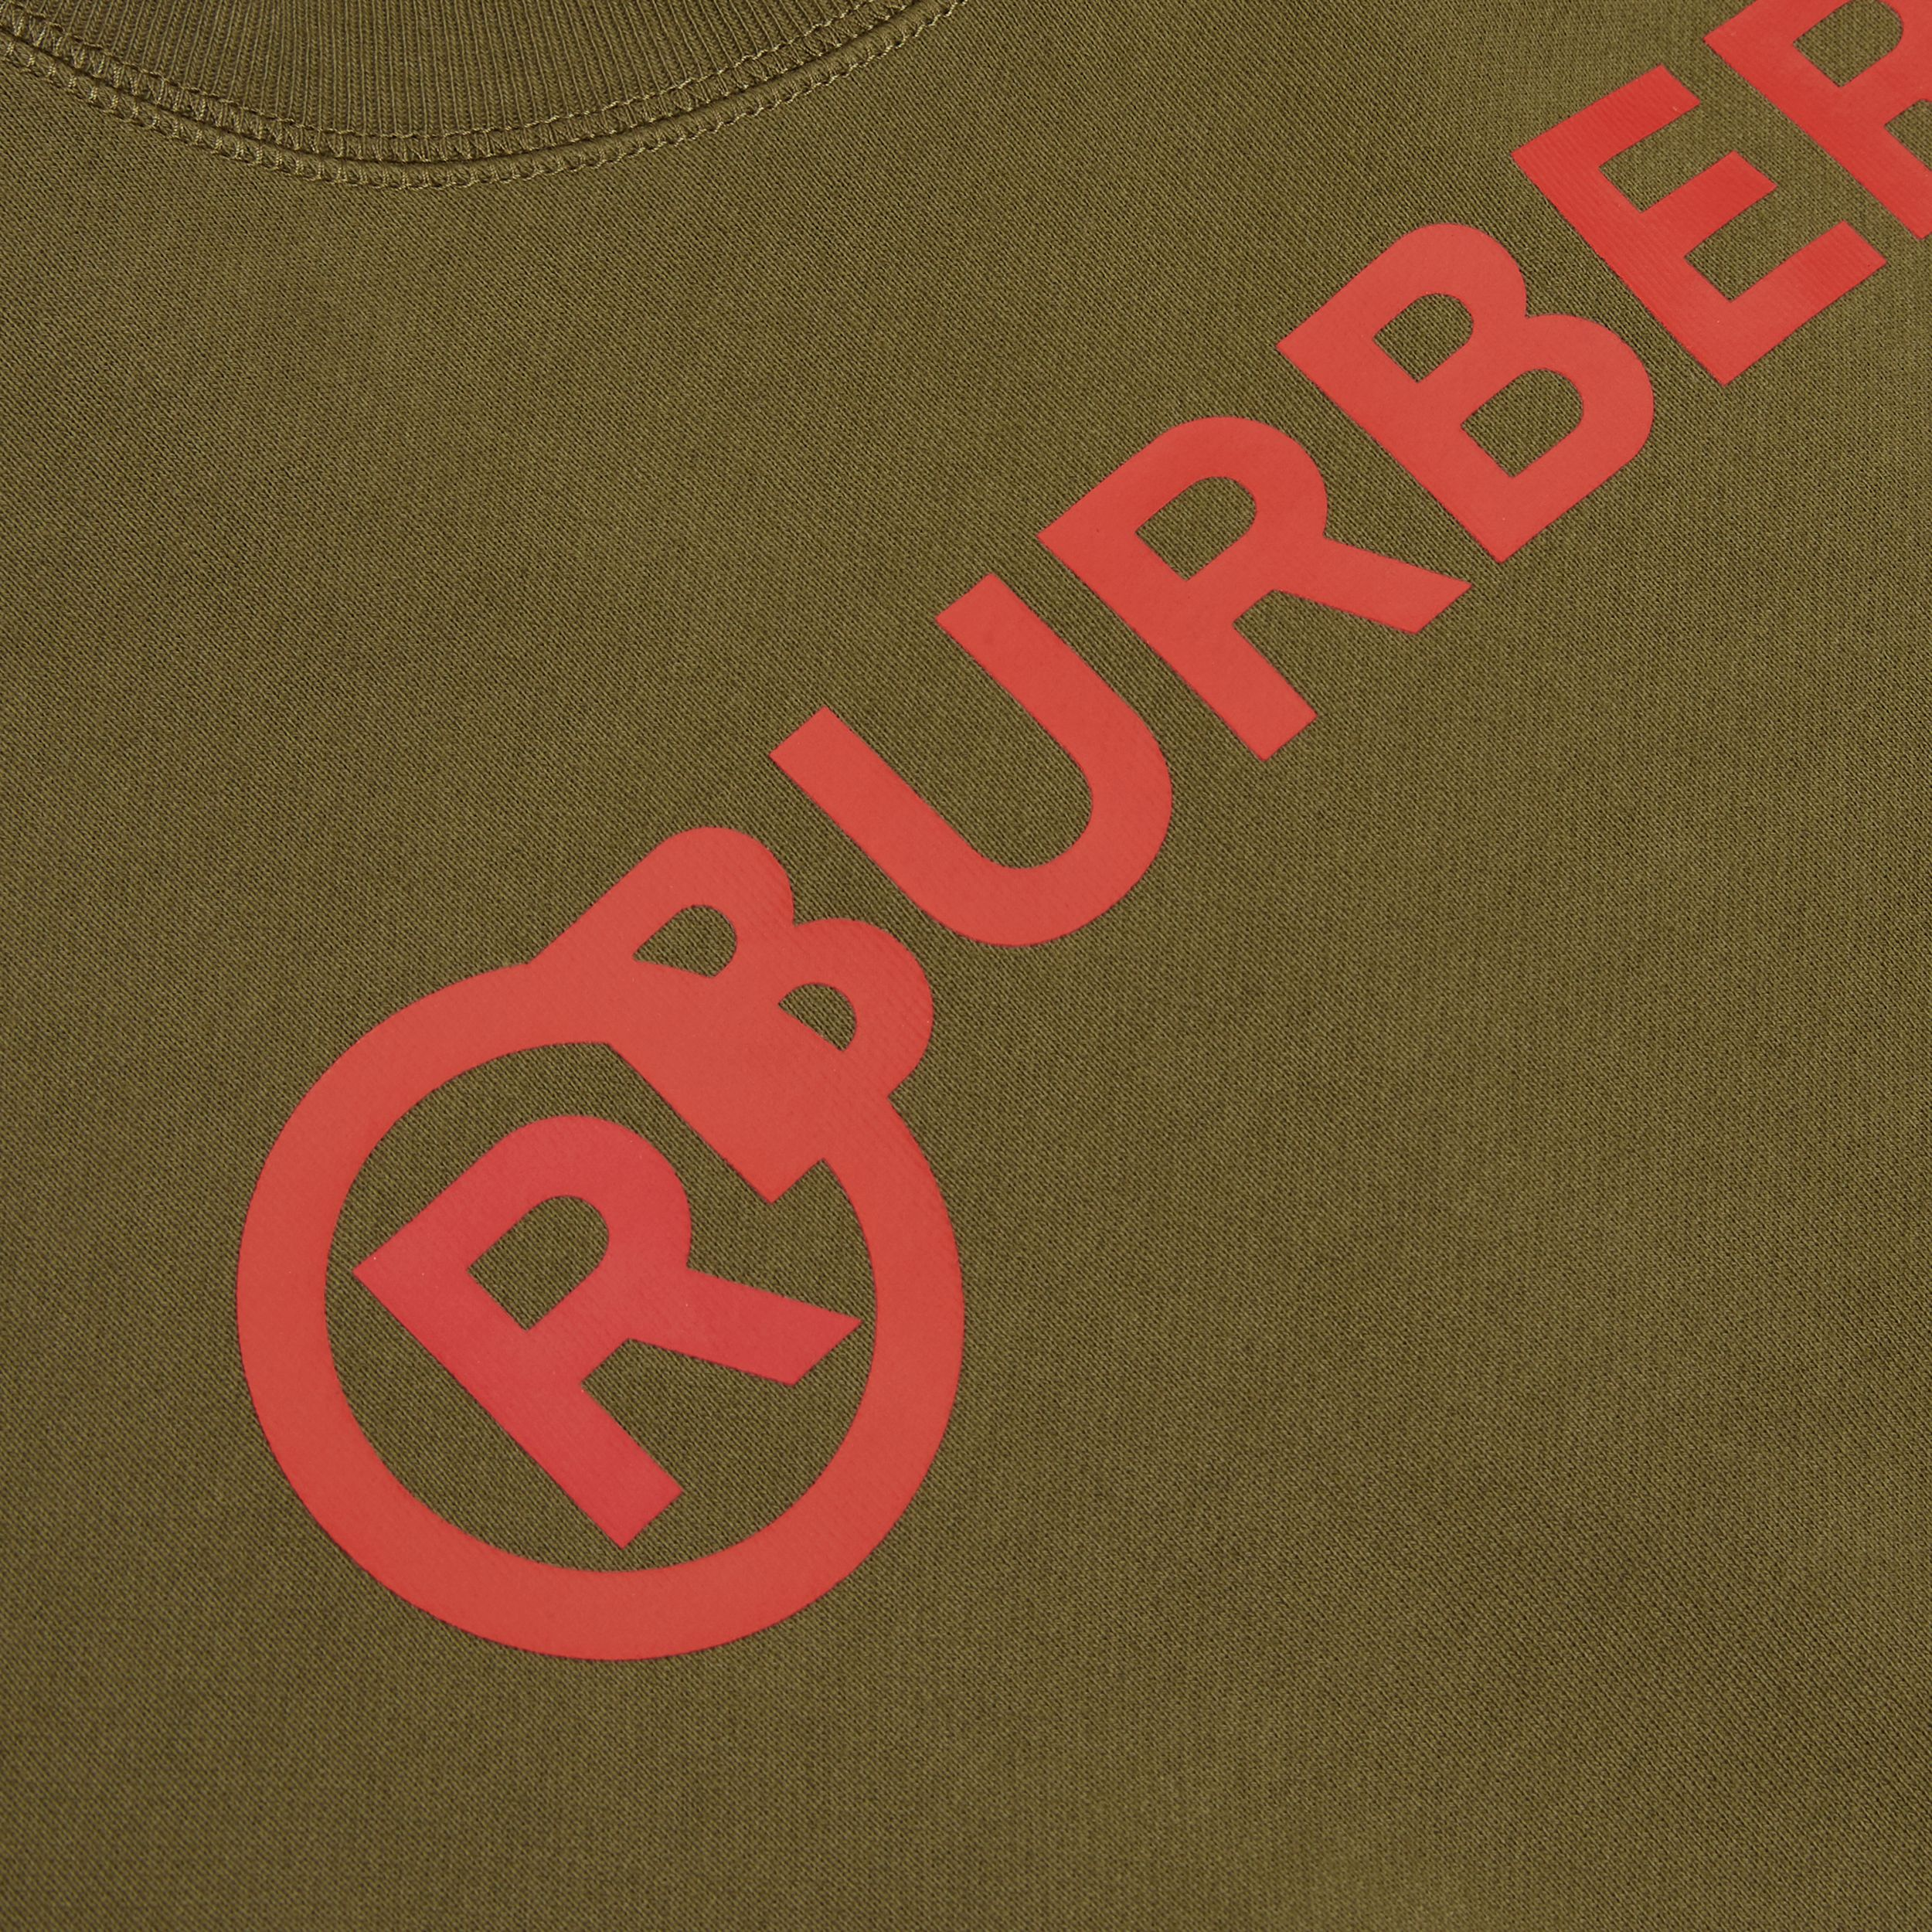 Logo and Stripe Print Cotton Sweatshirt in Khaki Green Melange | Burberry - 2